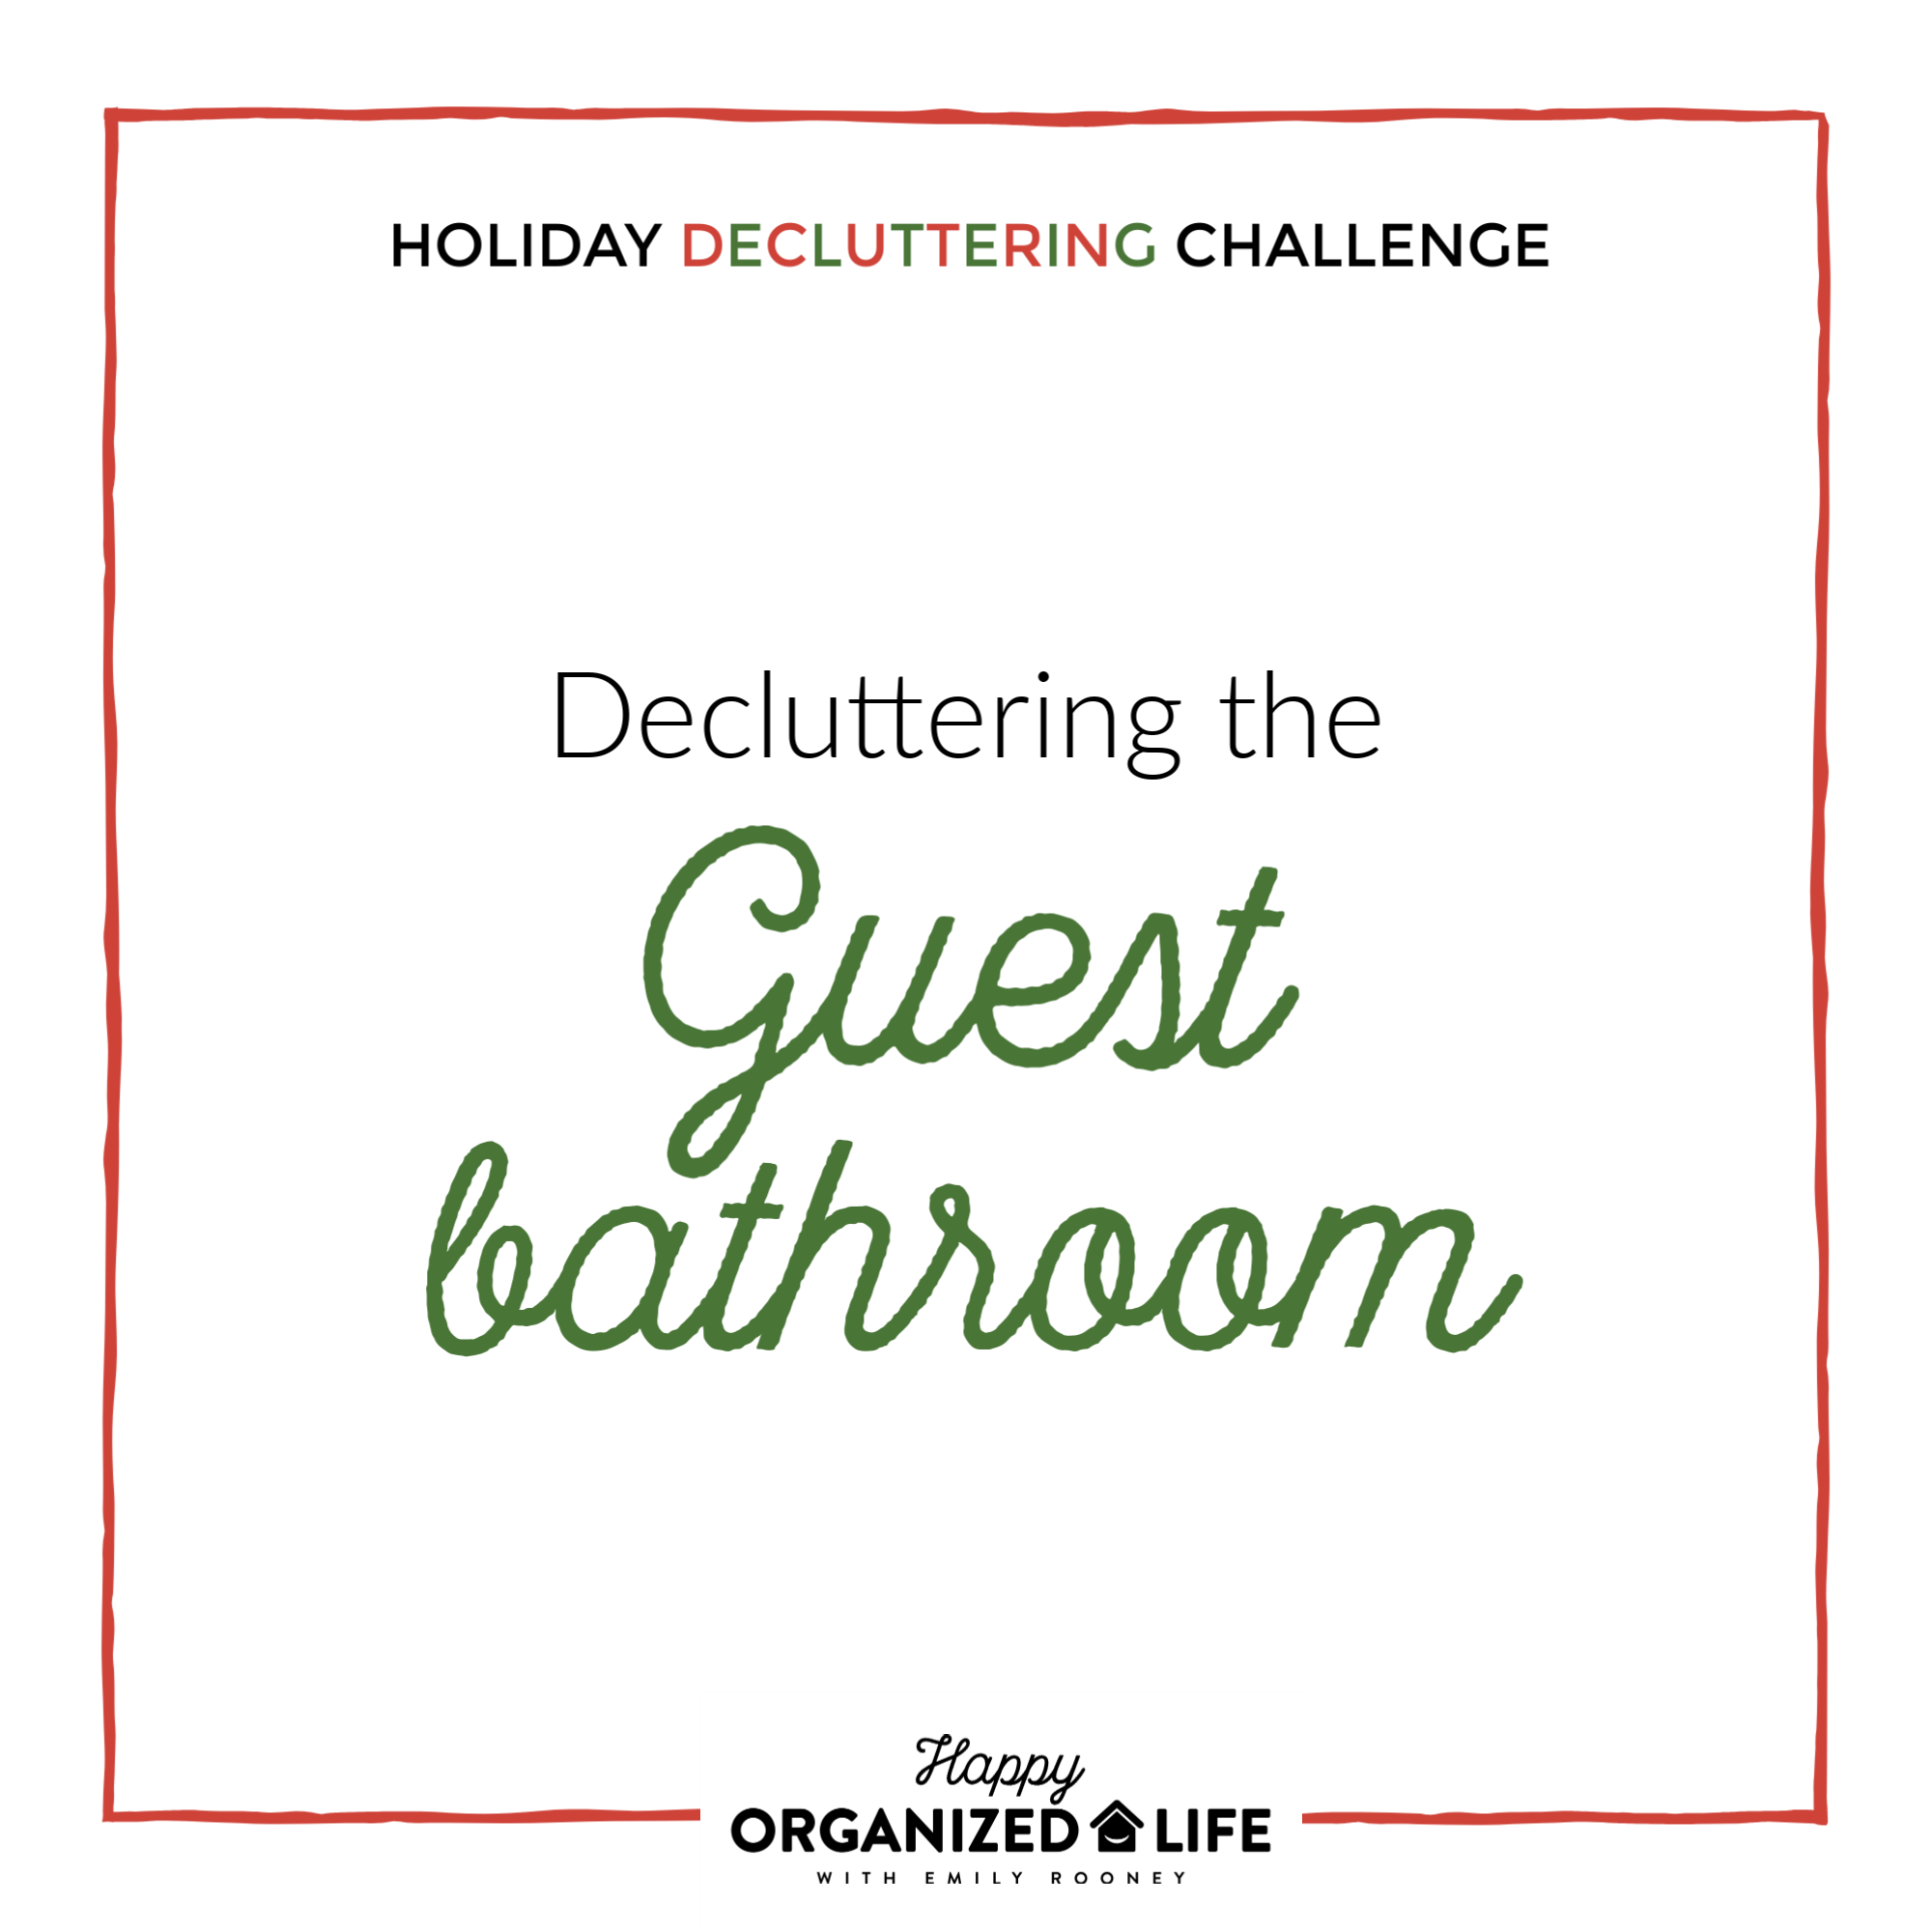 One of the most important spaces to clean and organize for guests in the bathroom. No one wants to use a gross or cluttered restroom, especially in someone else's home! Here are a few questions to ask about your guest bathroom before hosting guests.